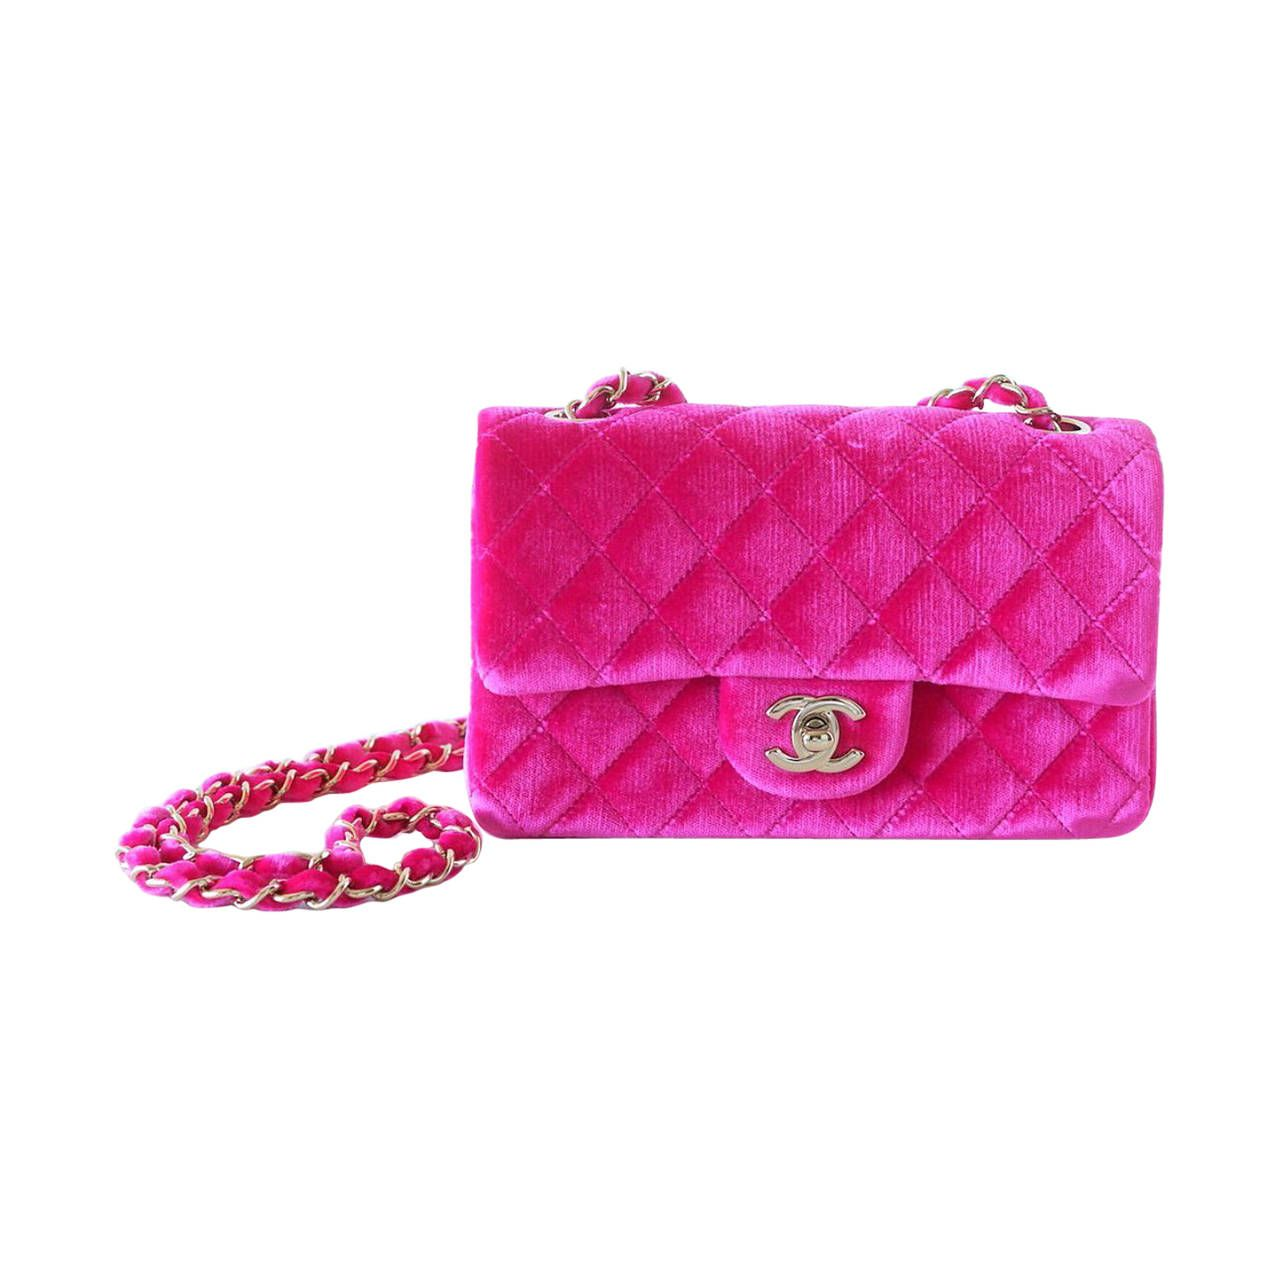 bba87b43bfa9 CHANEL bag mini rectangular velvet Fuchsia pink gold hardware | From a  collection of rare vintage